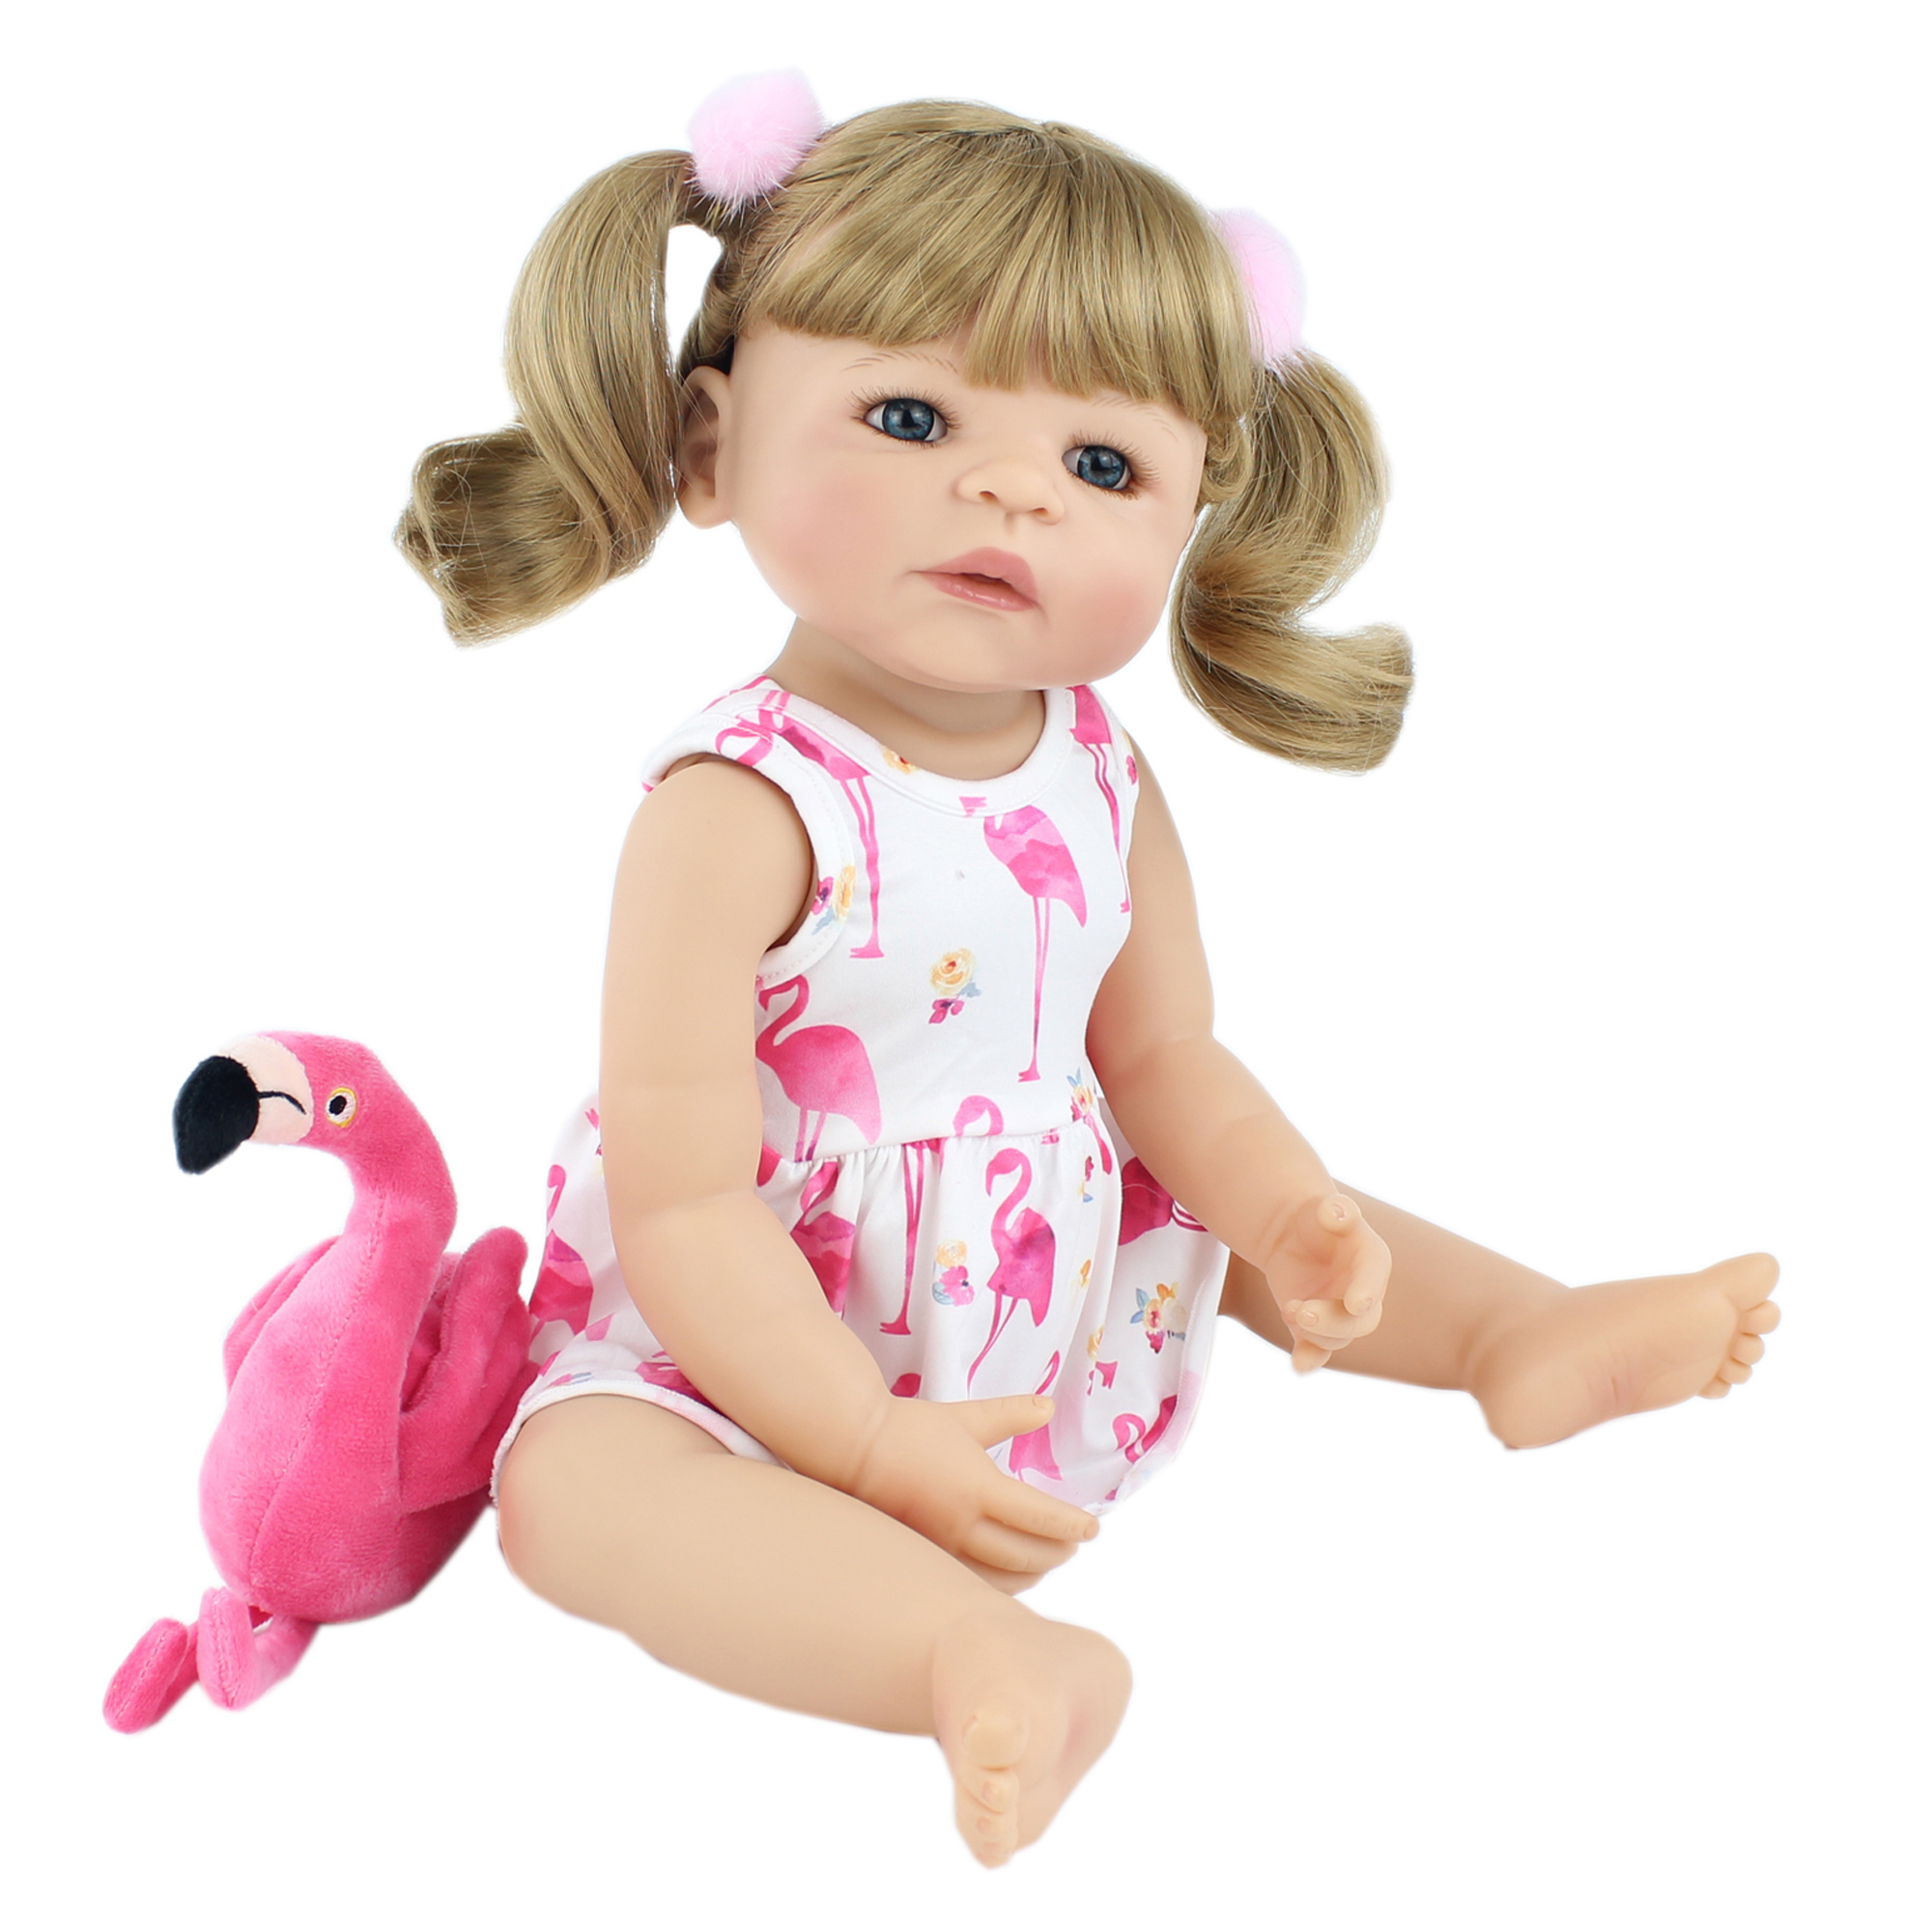 55cm Full Silicone Reborn Baby Doll Toy For Girl Blonde Princess Toddler Alive Babies Realistic Classic Boneca Play House Toy